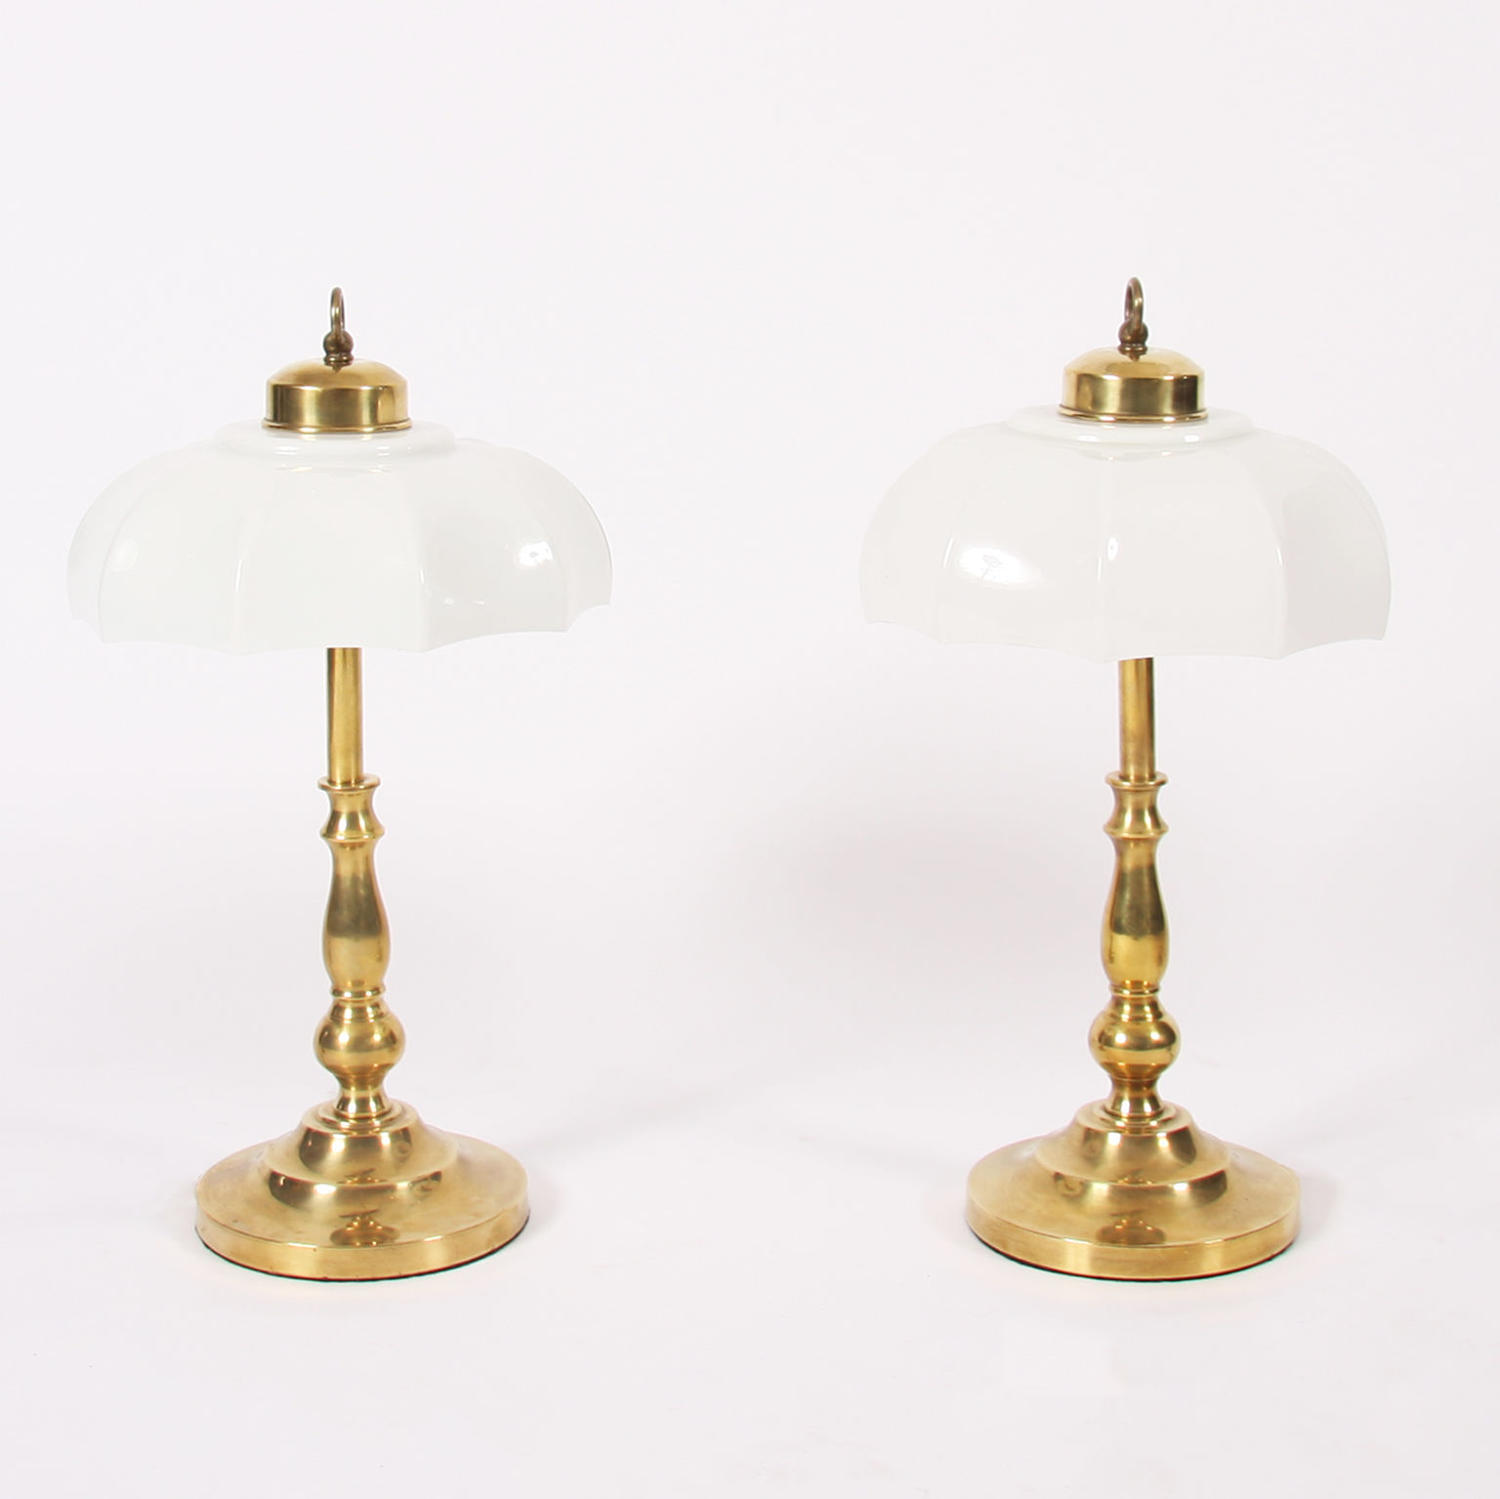 Pair of Brass Table Lamps with Opaline Shades